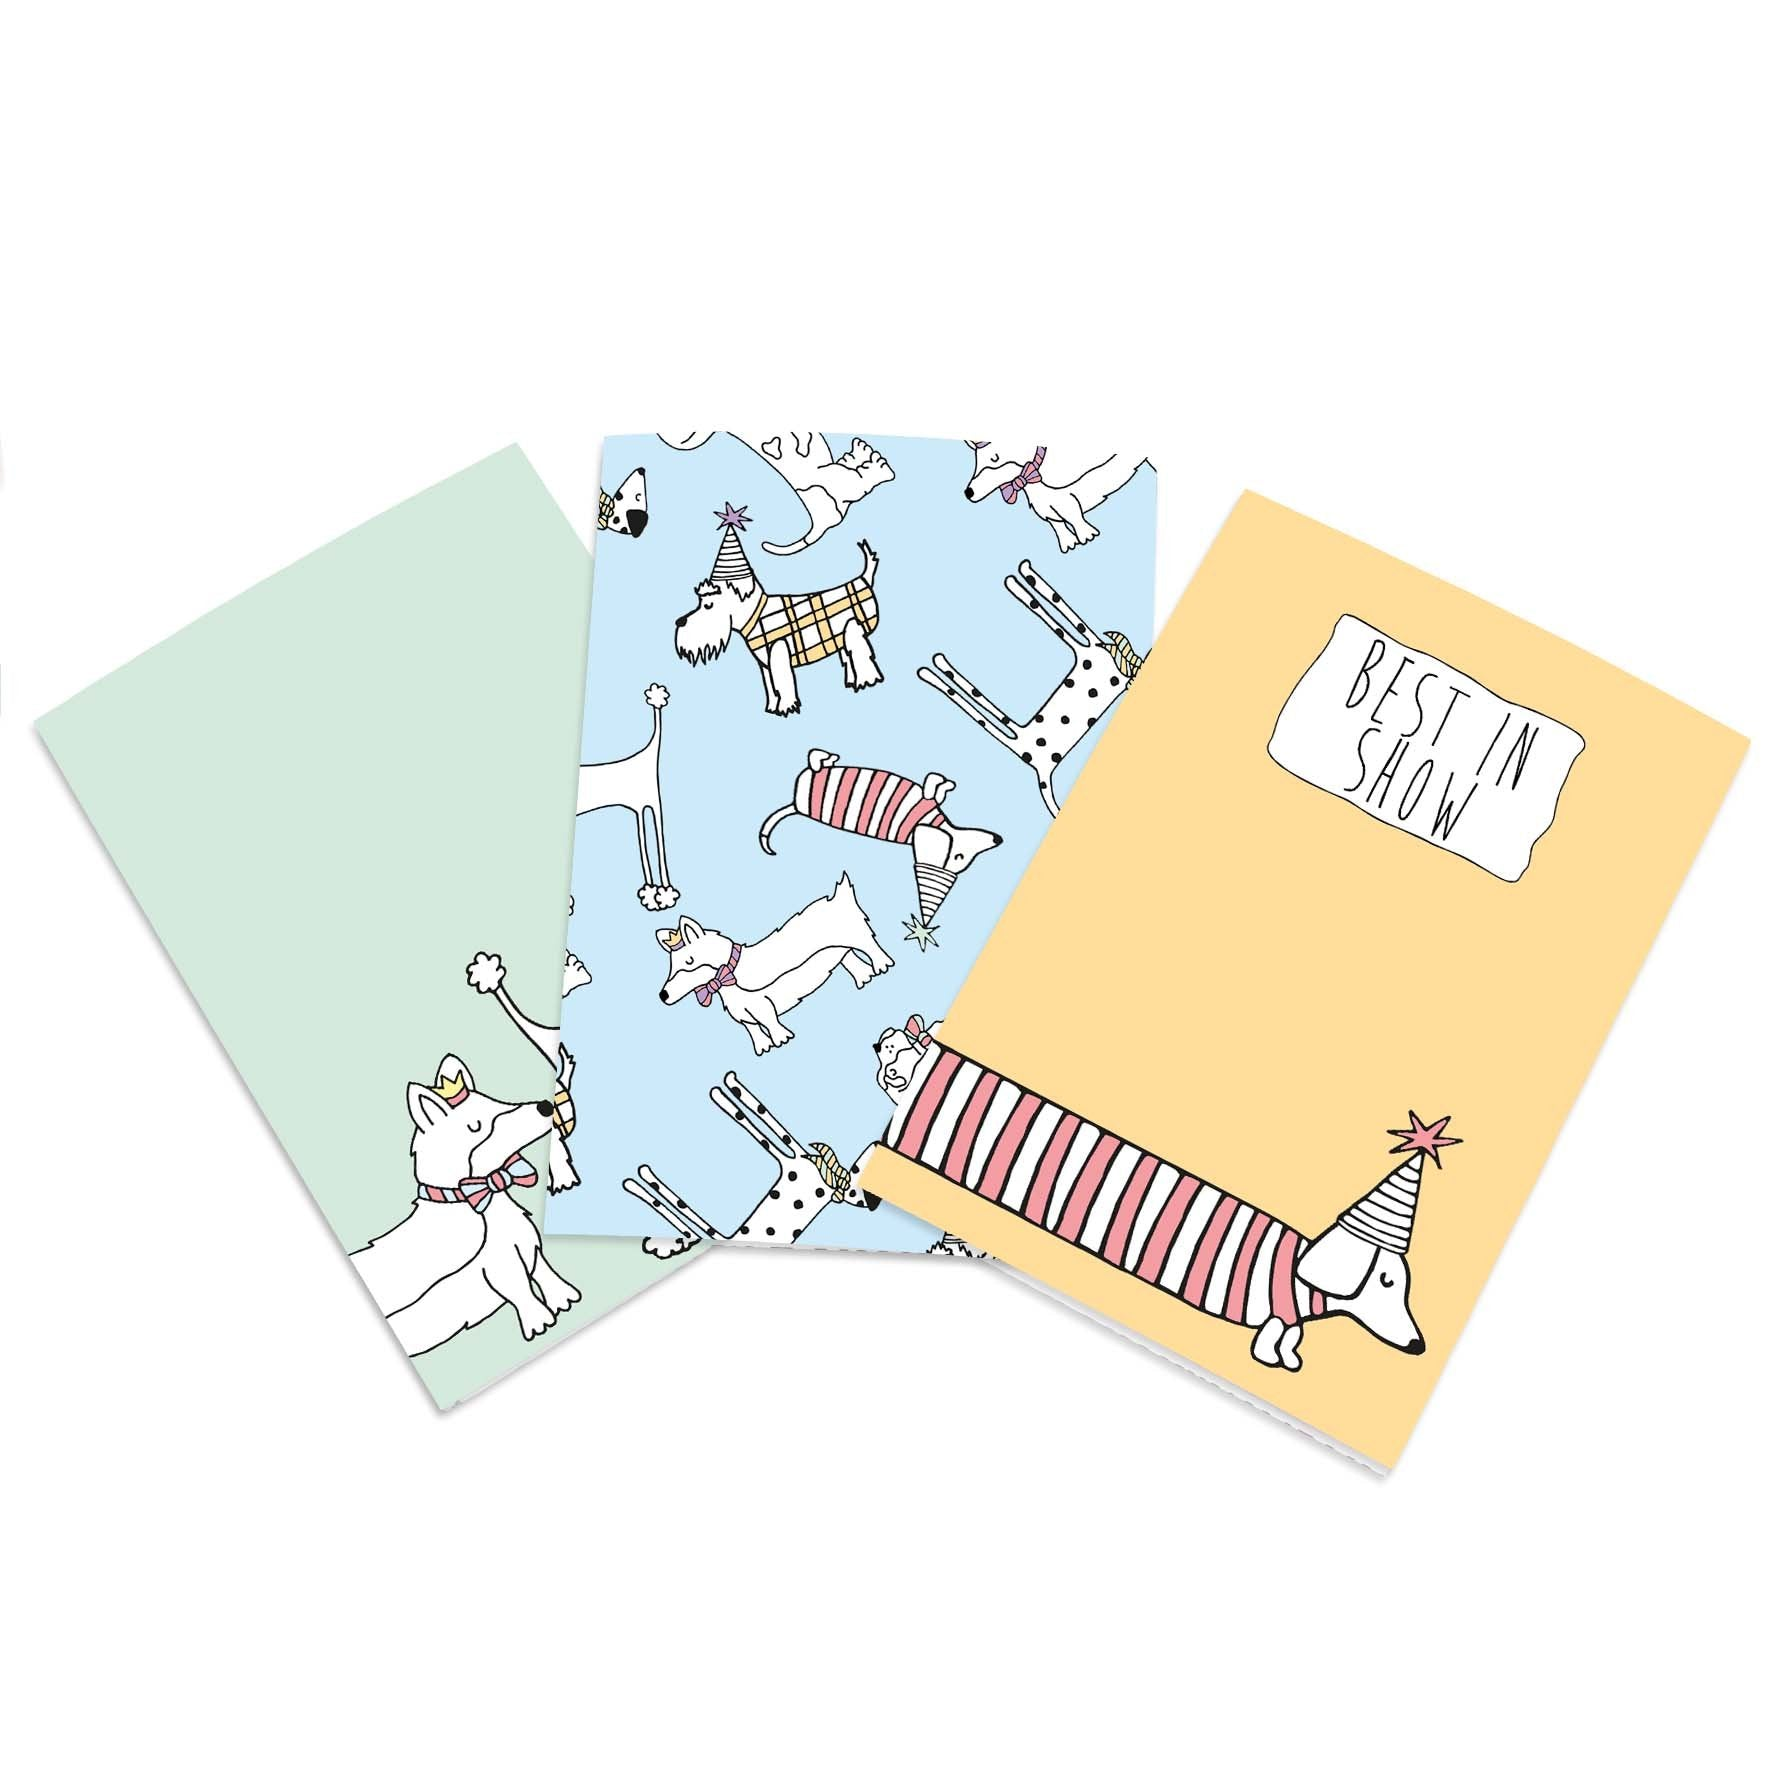 A6 illustrated dog notebook set. Green, blue and orange notebooks